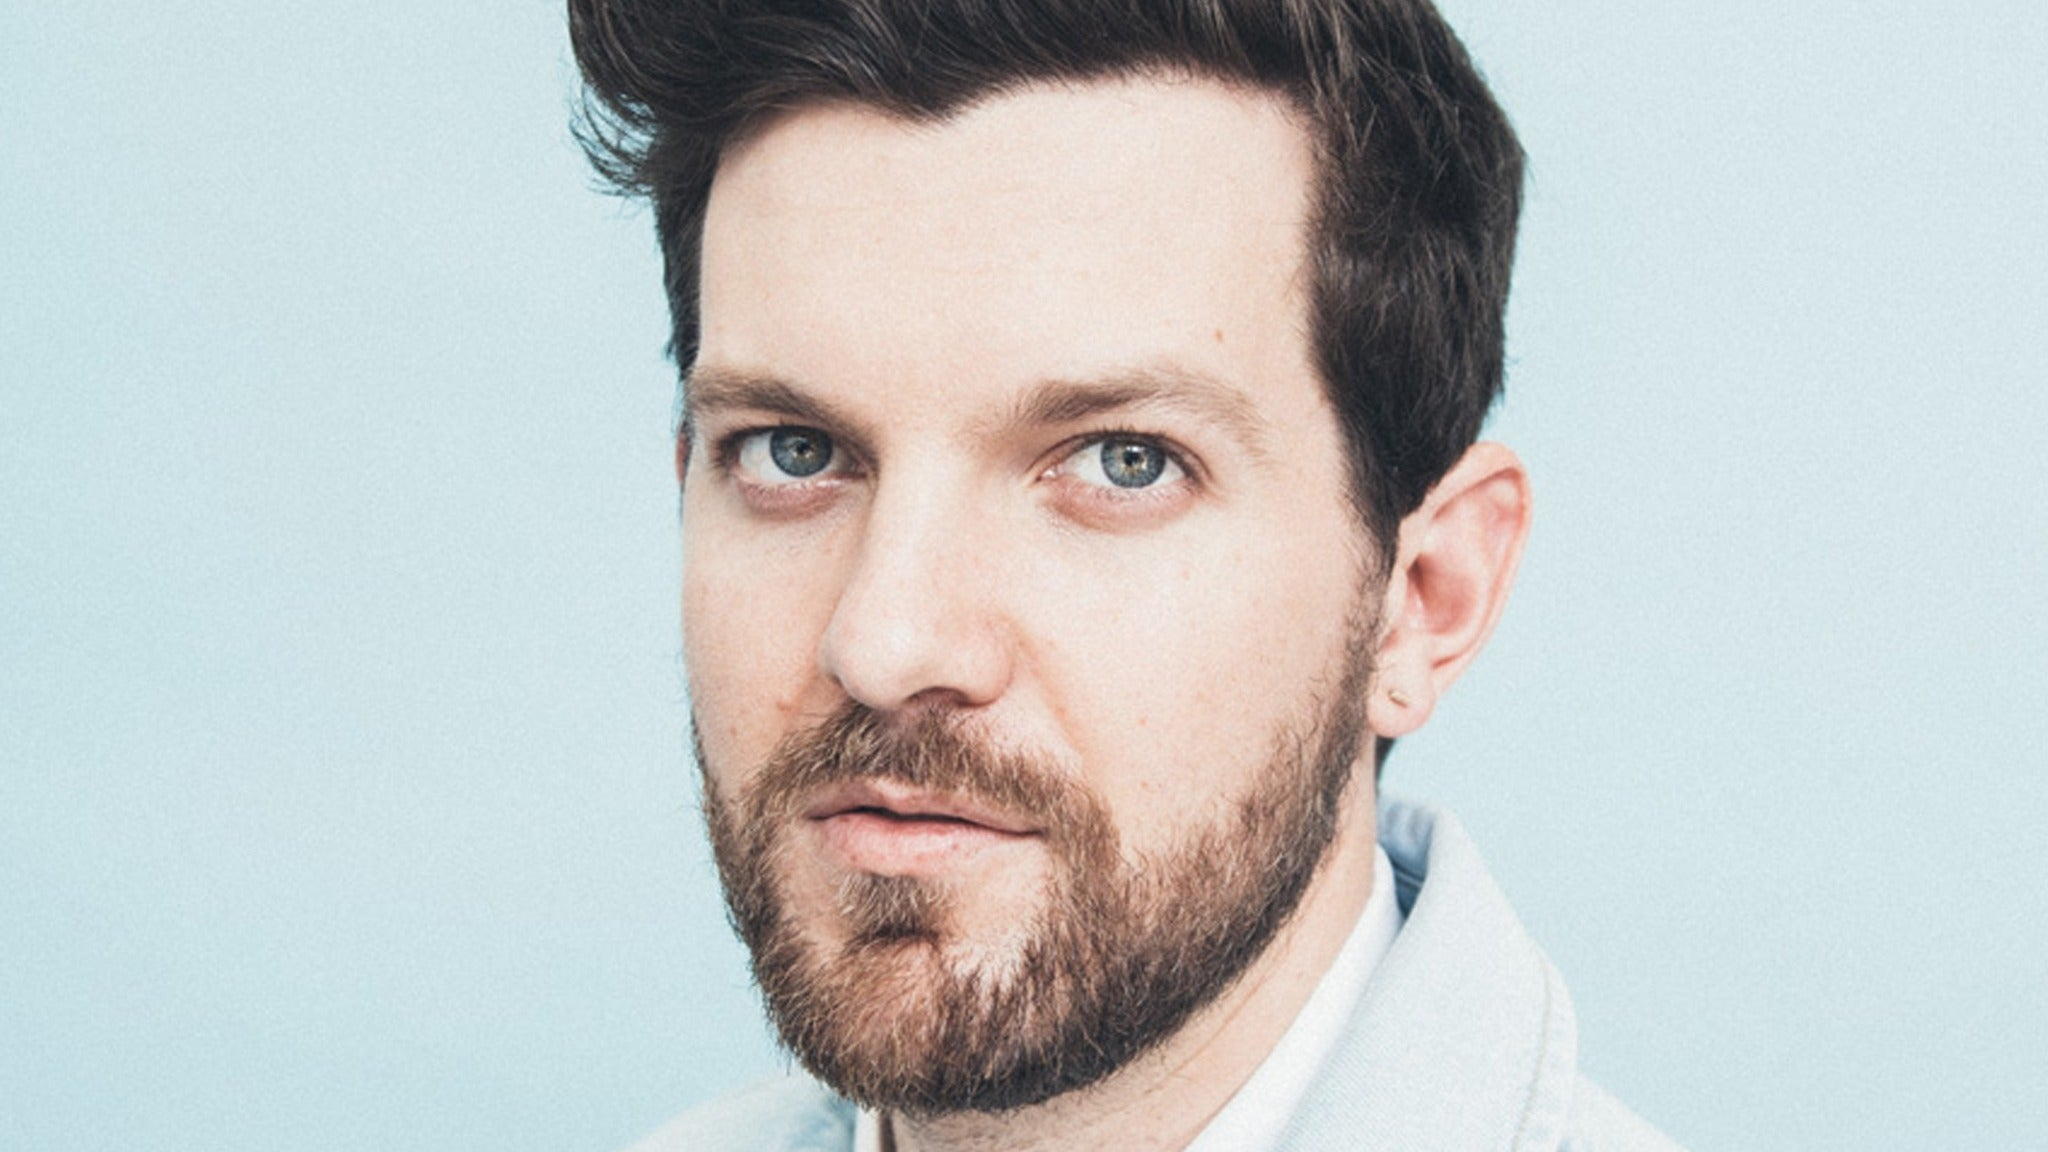 Dillon Francis at The Bomb Factory